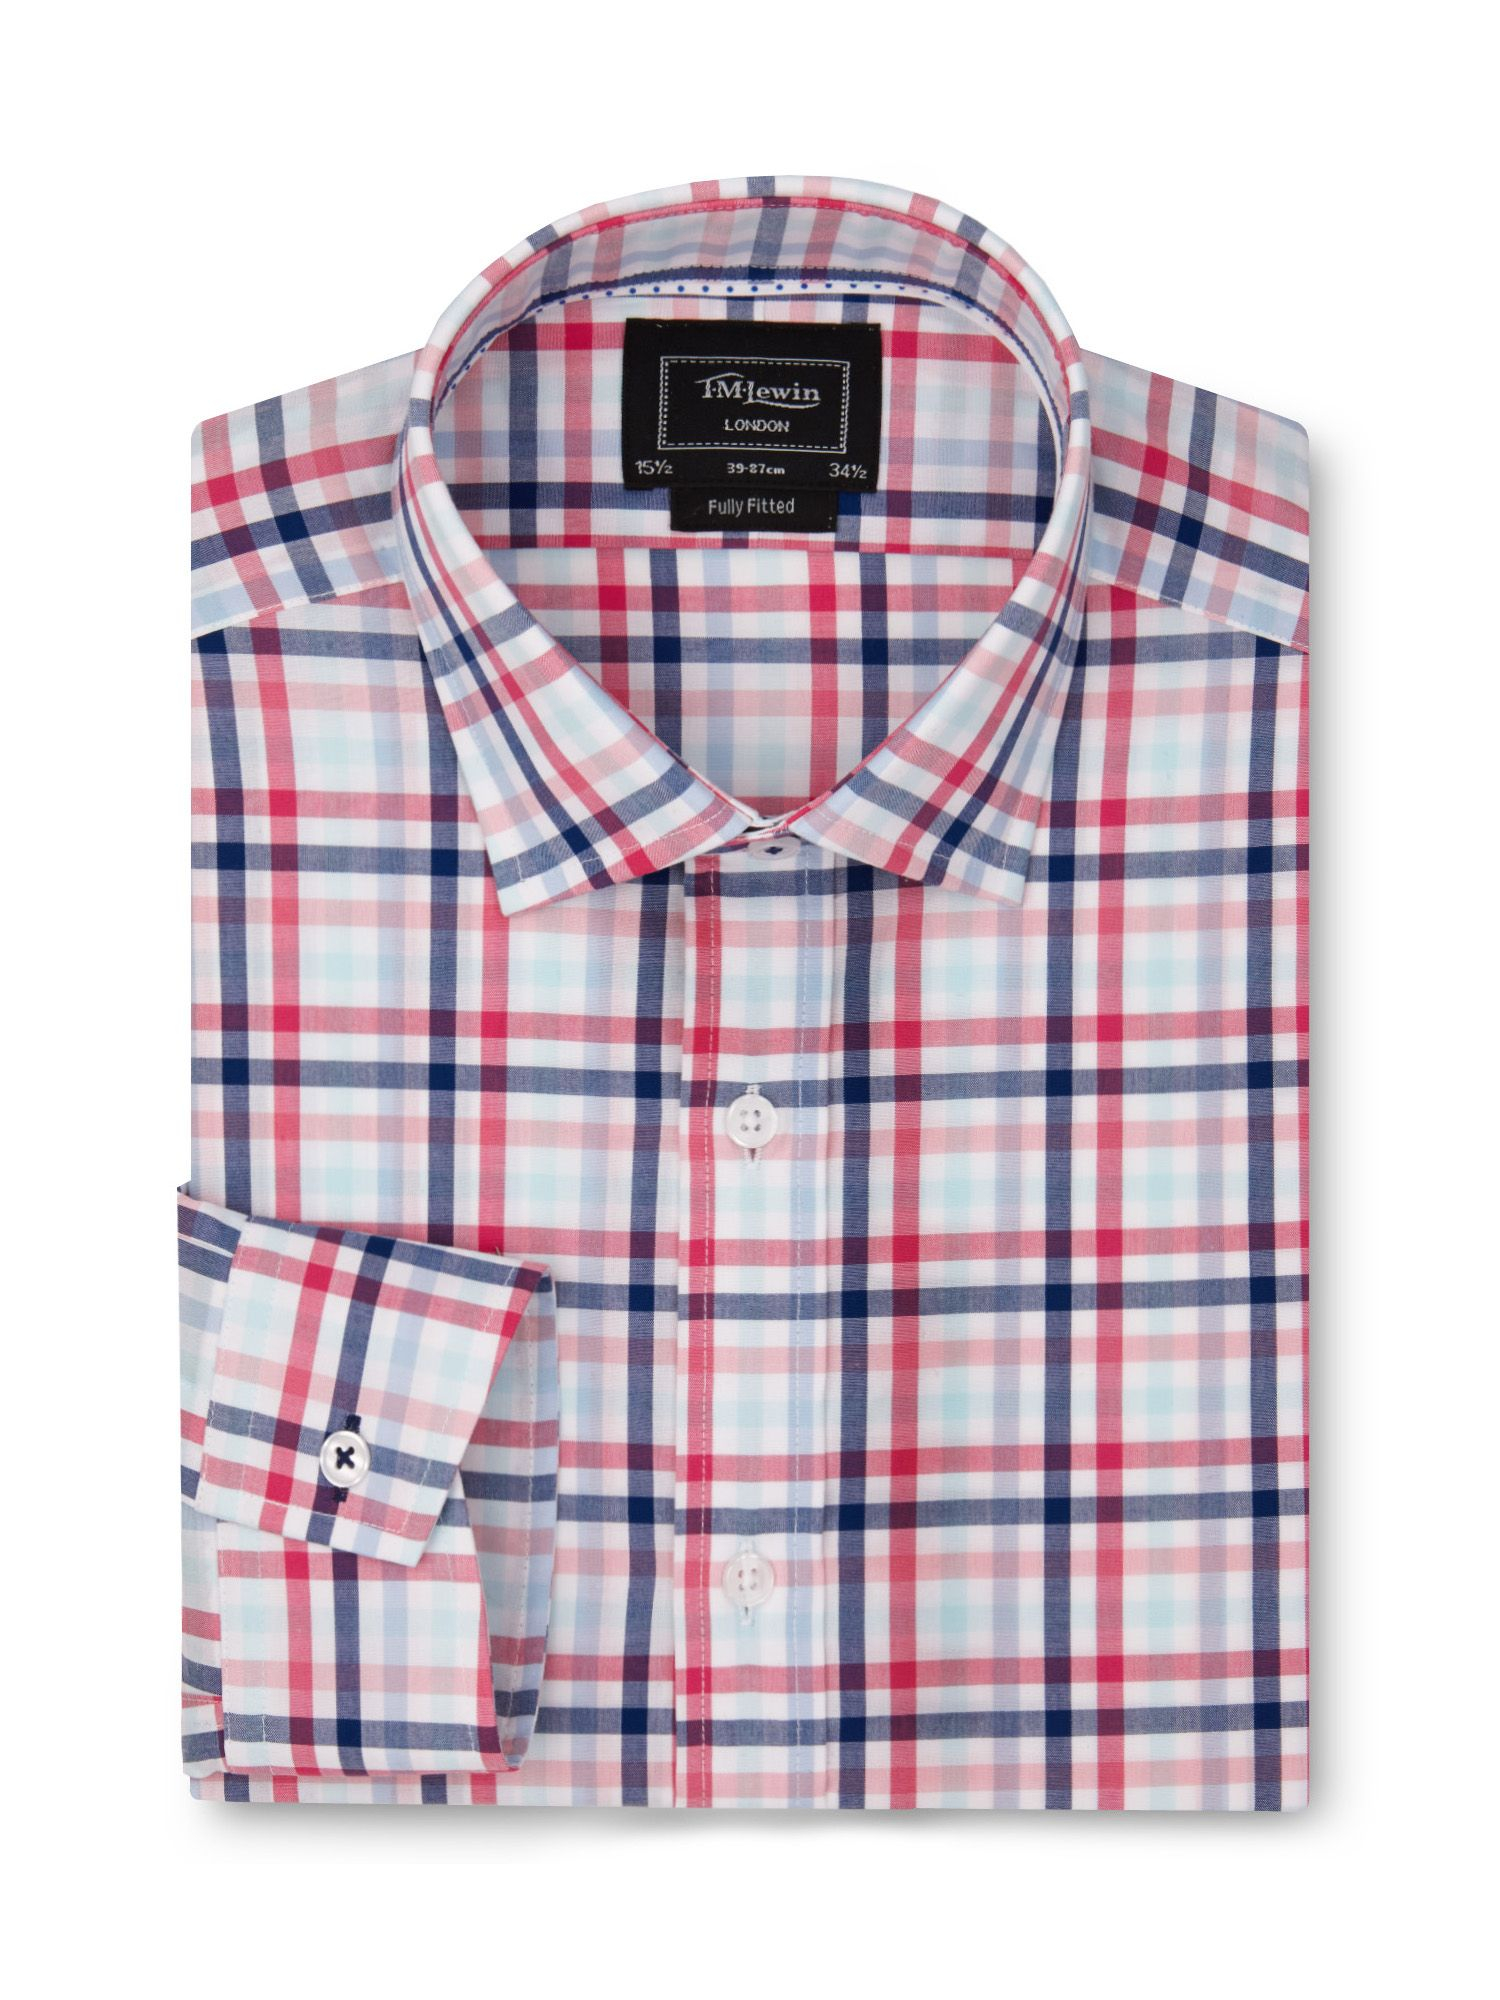 Fully fitted block check shirt